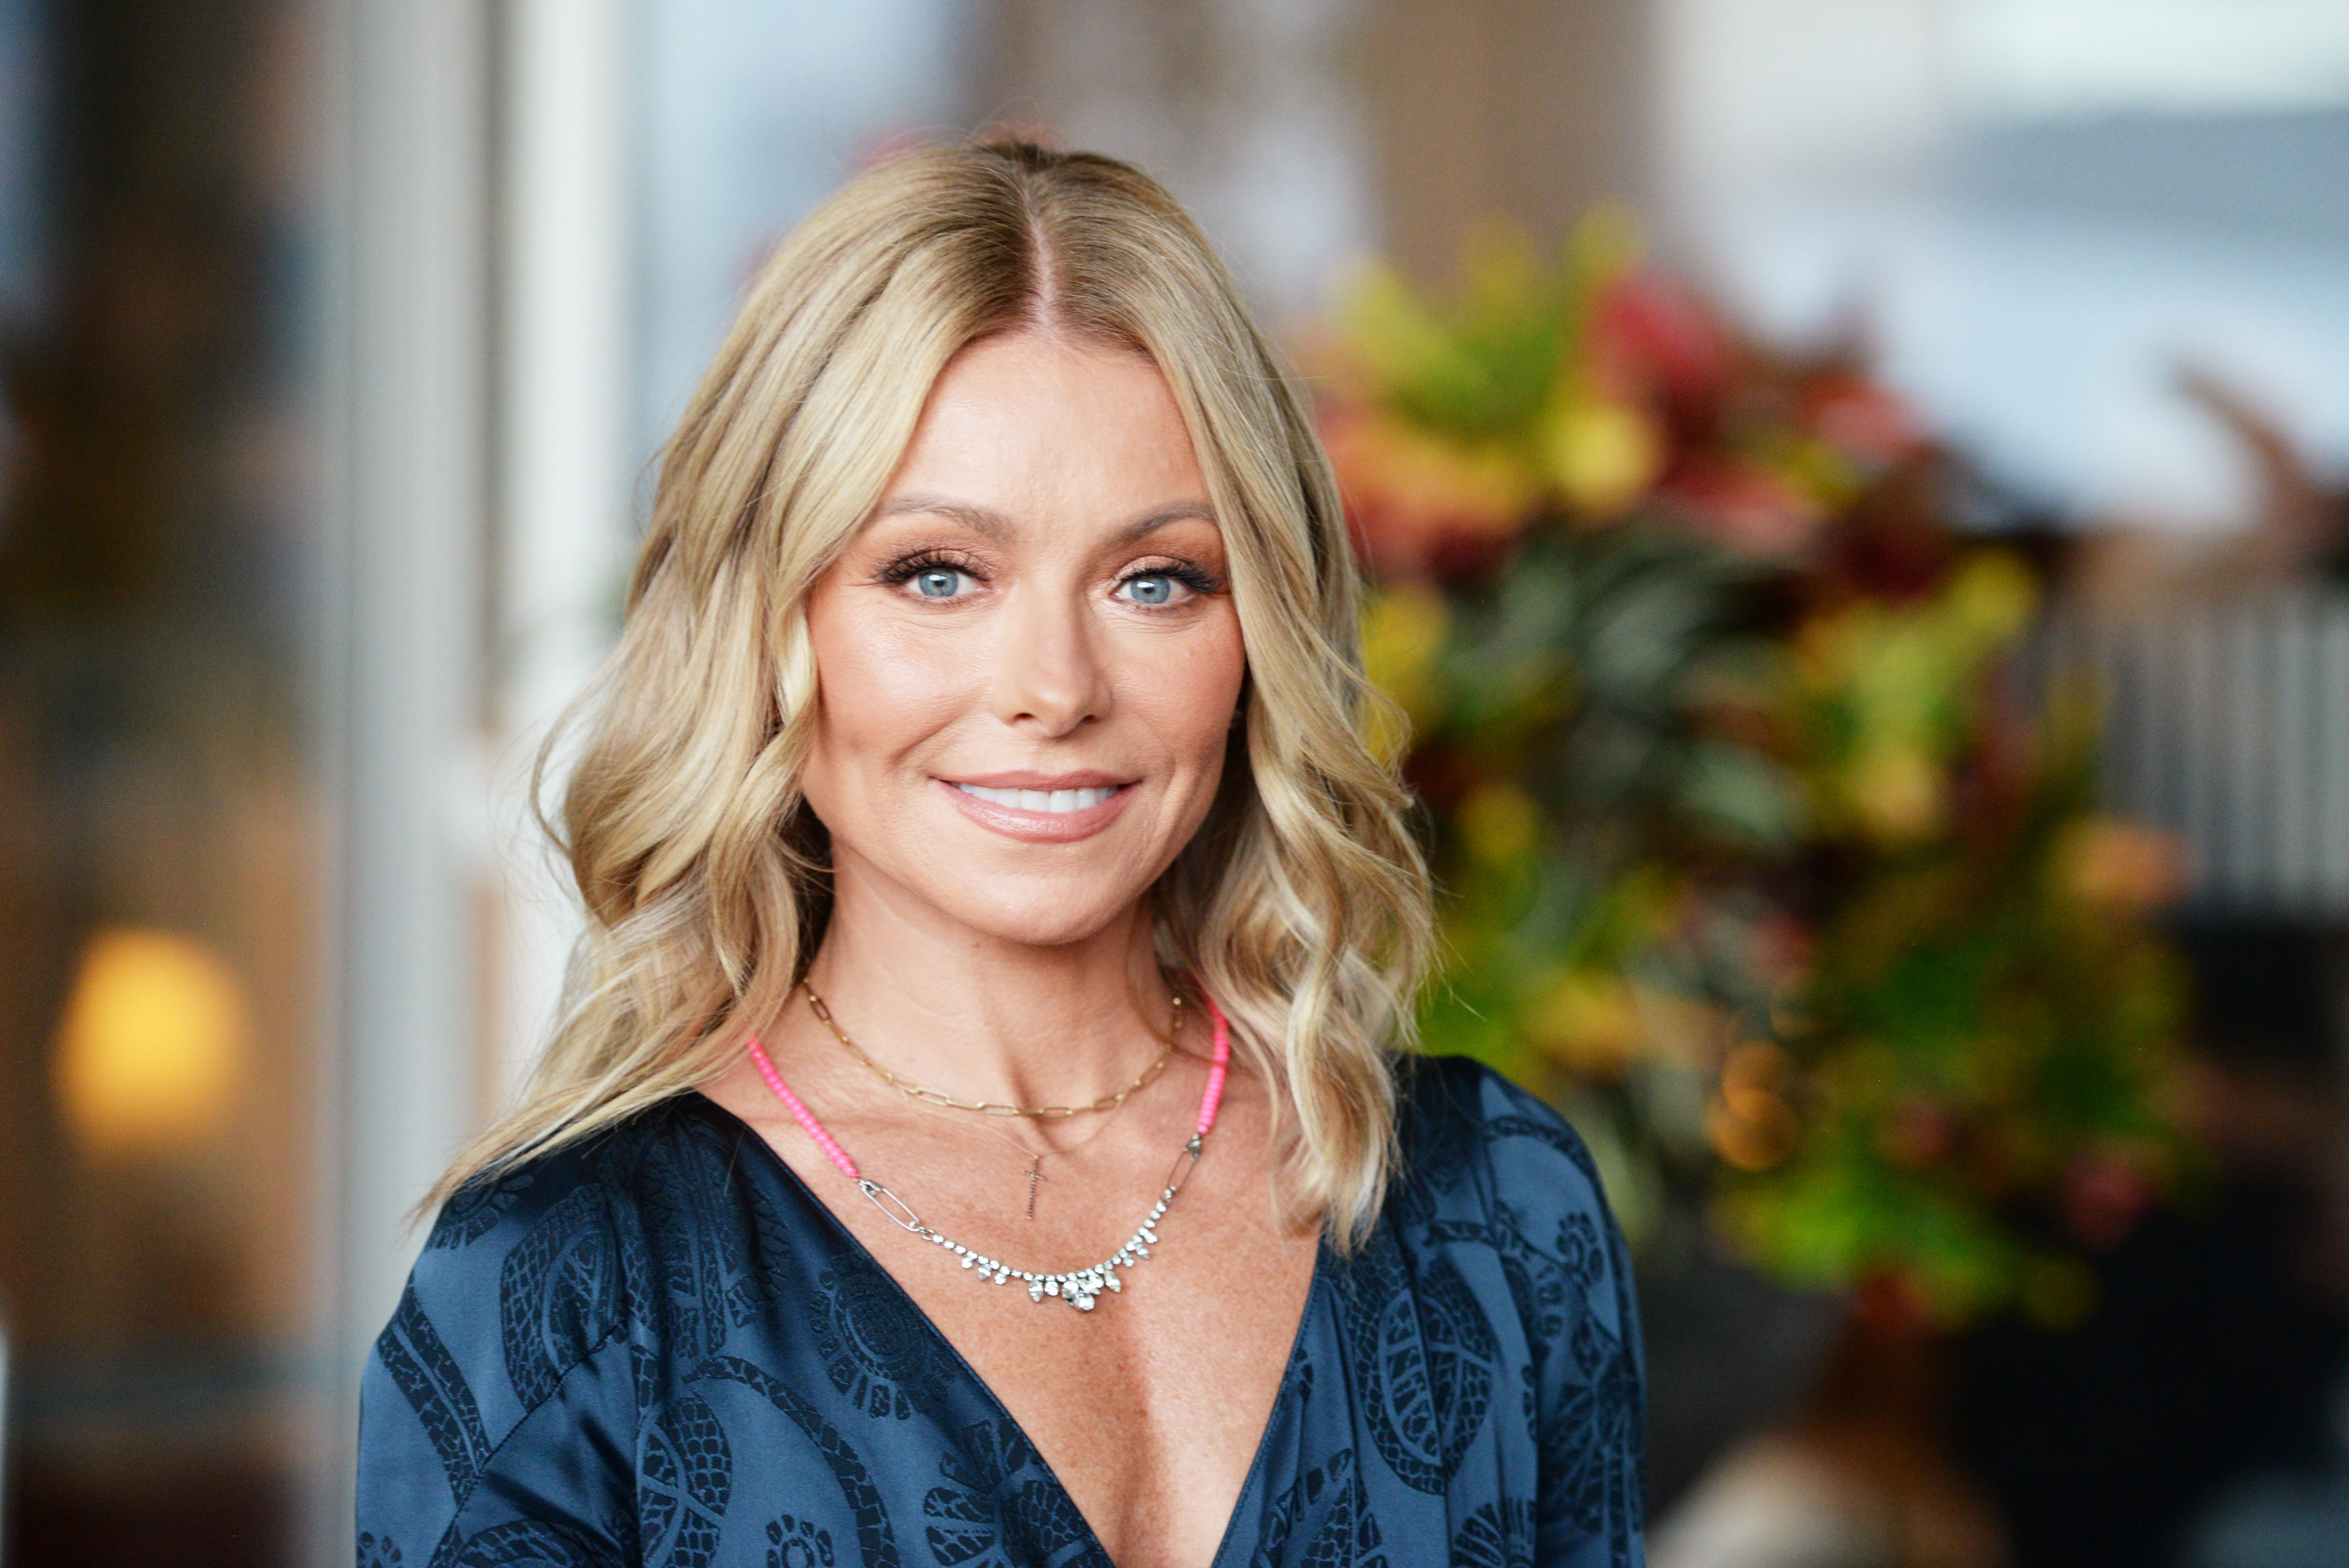 Westlake Legal Group GettyImages-1038171826 Kelly Ripa reveals she's stopped drinking since co-hosting 'Live' with Ryan Seacrest Jessica Napoli fox-news/person/kelly-ripa fox-news/entertainment/tv fox-news/entertainment/genres/diet-fitness fox-news/entertainment fox news fnc/entertainment fnc article 9072cce8-d909-5c15-a66c-738bd90387d0